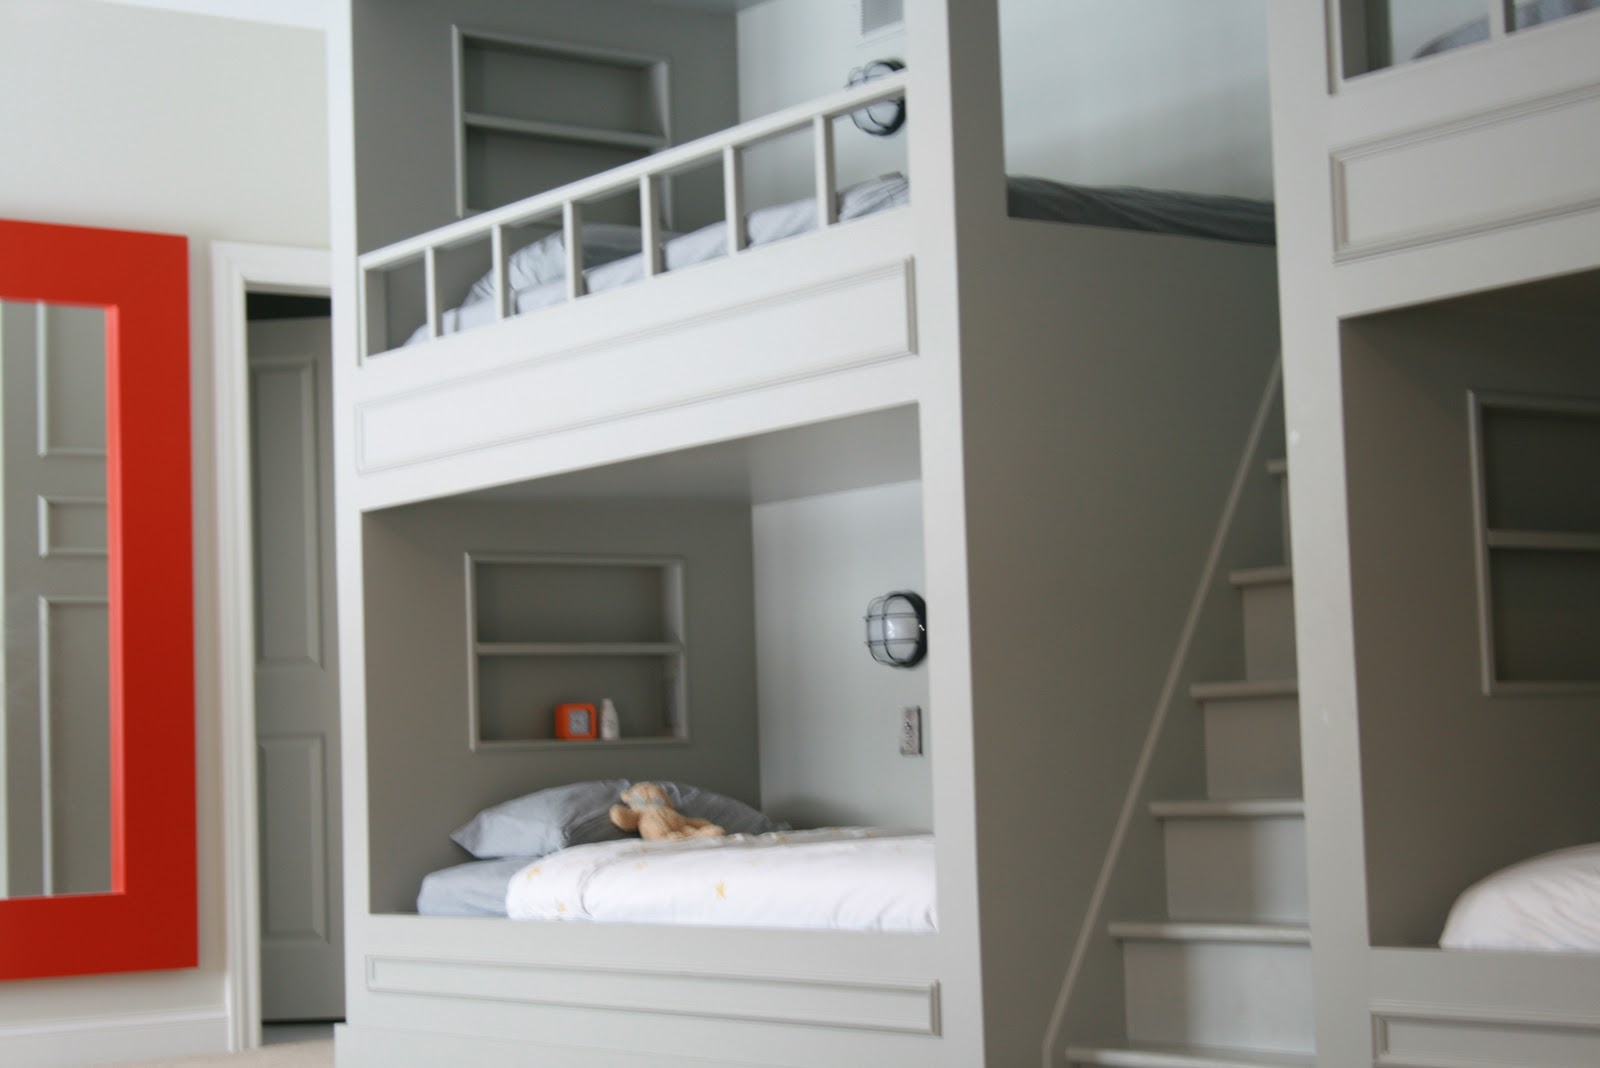 built in bunk beds plans bed plans diy blueprints - Bunk Beds Design Plans